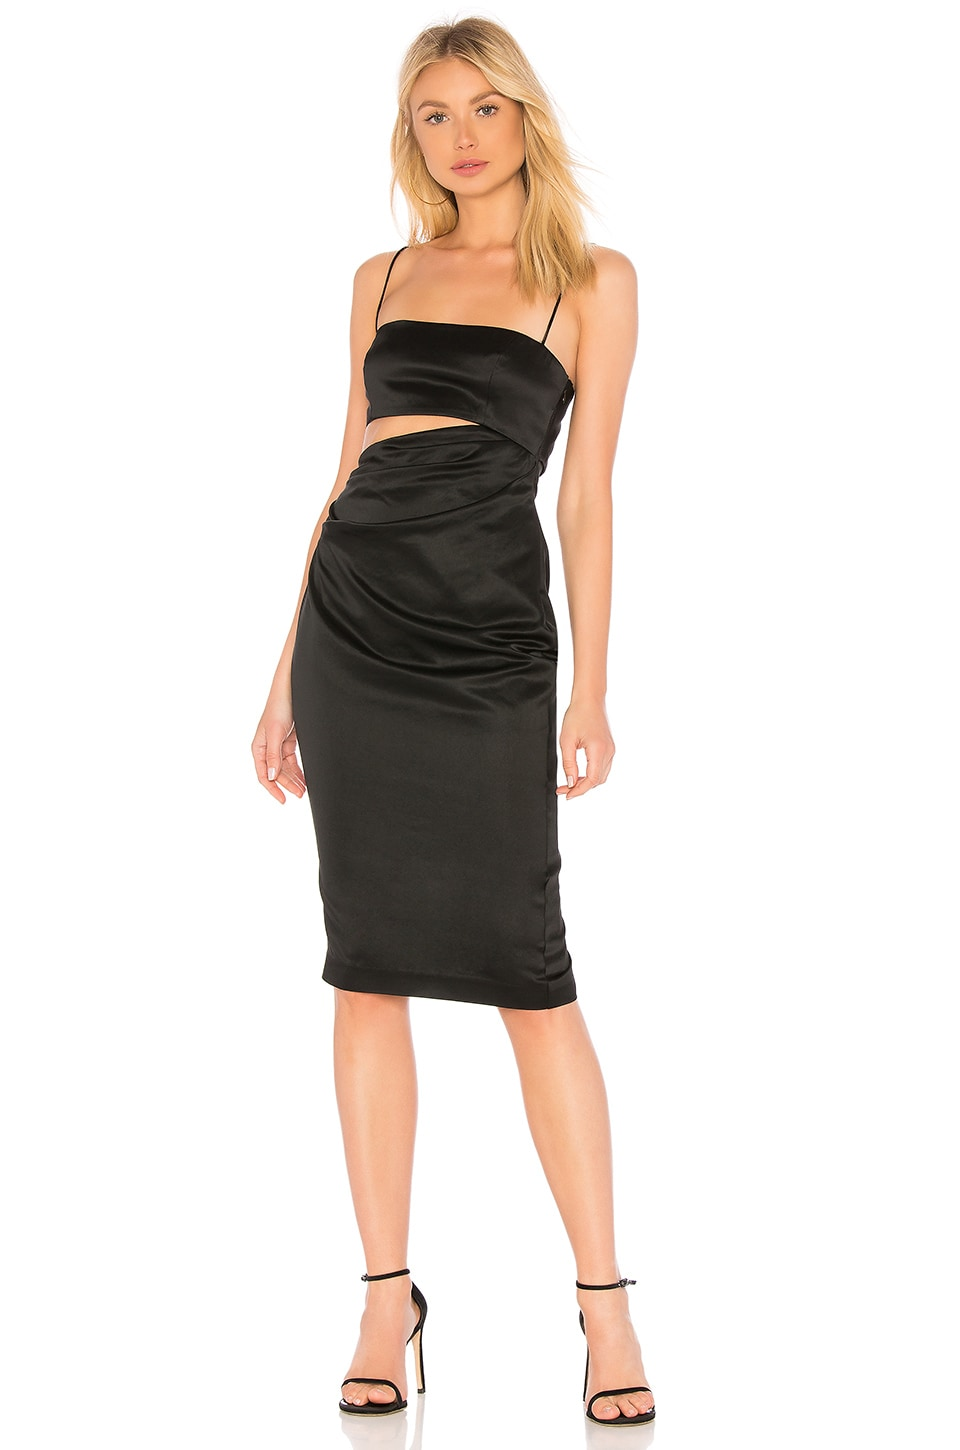 MISHA COLLECTION Selina Dress in Black